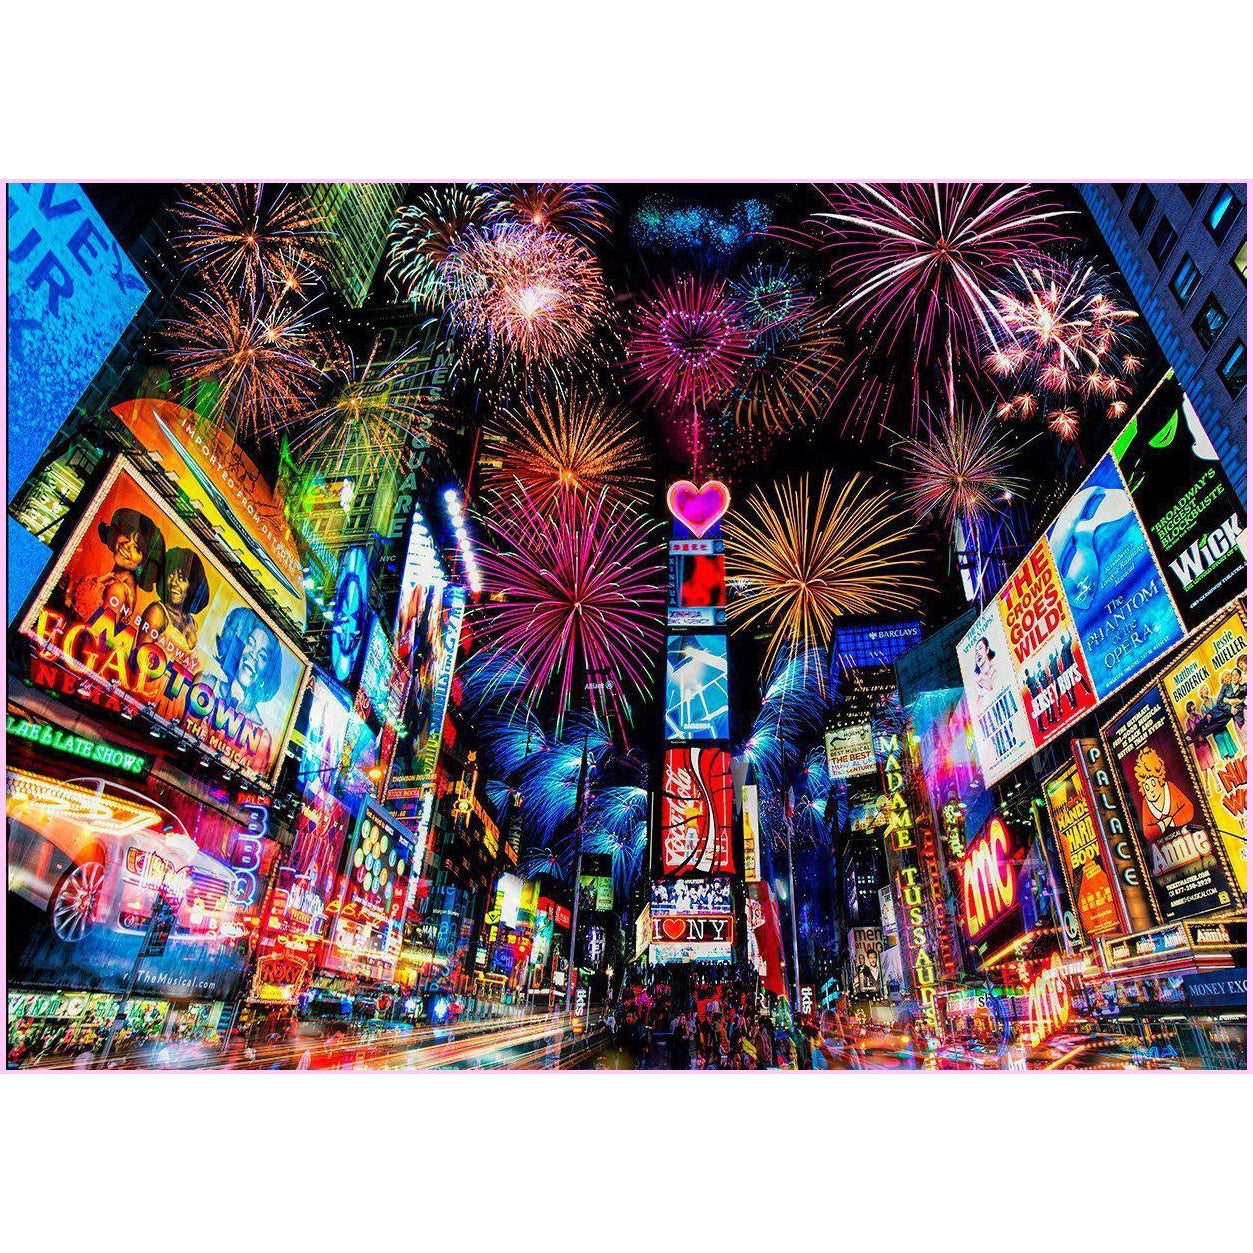 New York Neon-Diamond Painting Kit USPS-50x70cm (20x28 in)-Square-Heartful Diamonds